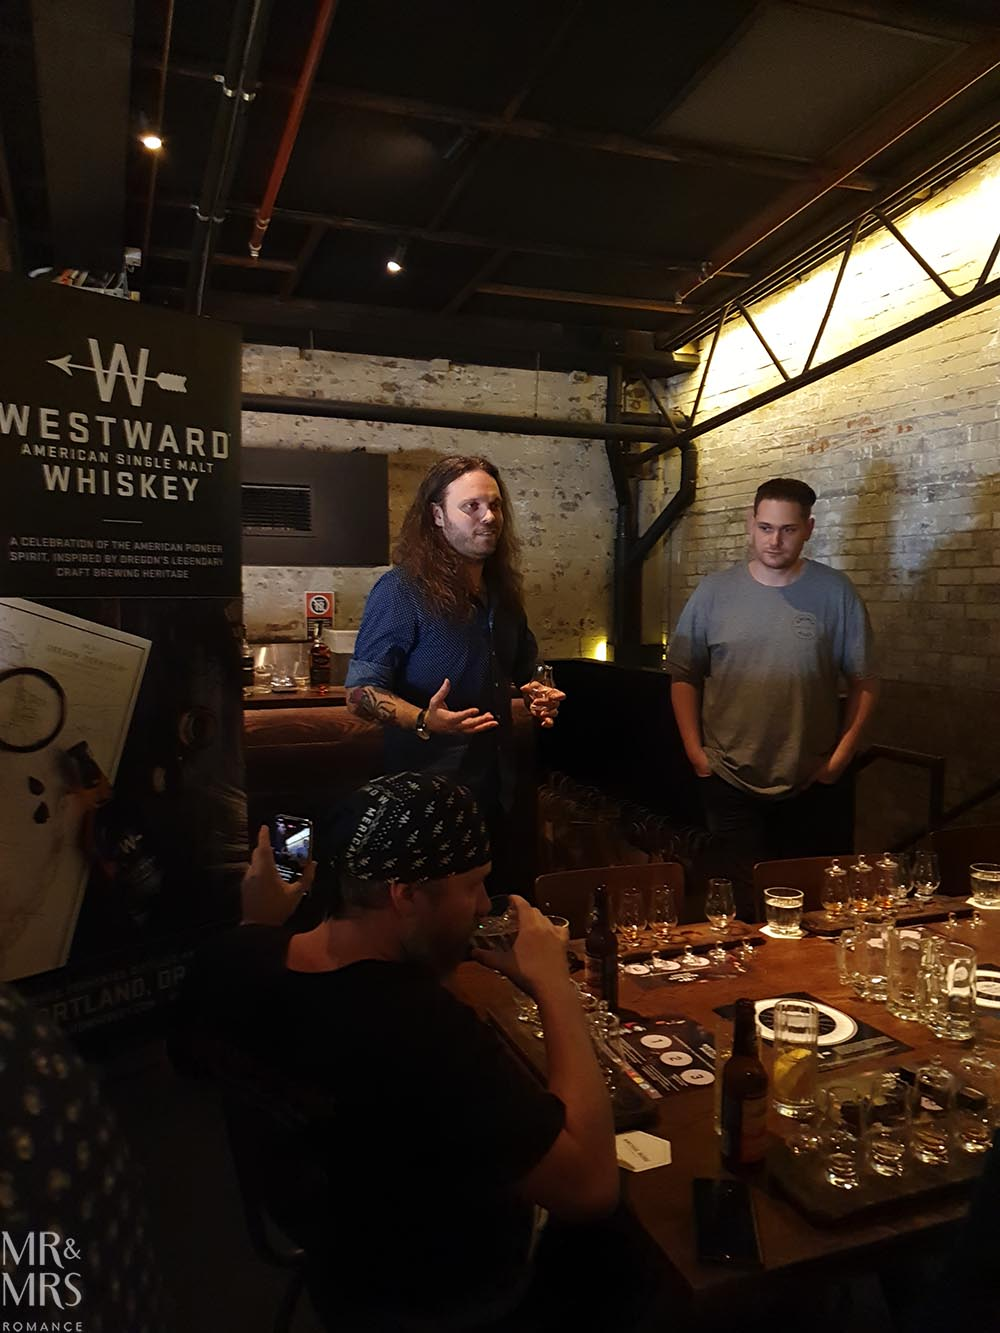 Miles Munroe Westward Whiskey masterclass at Archie Rose